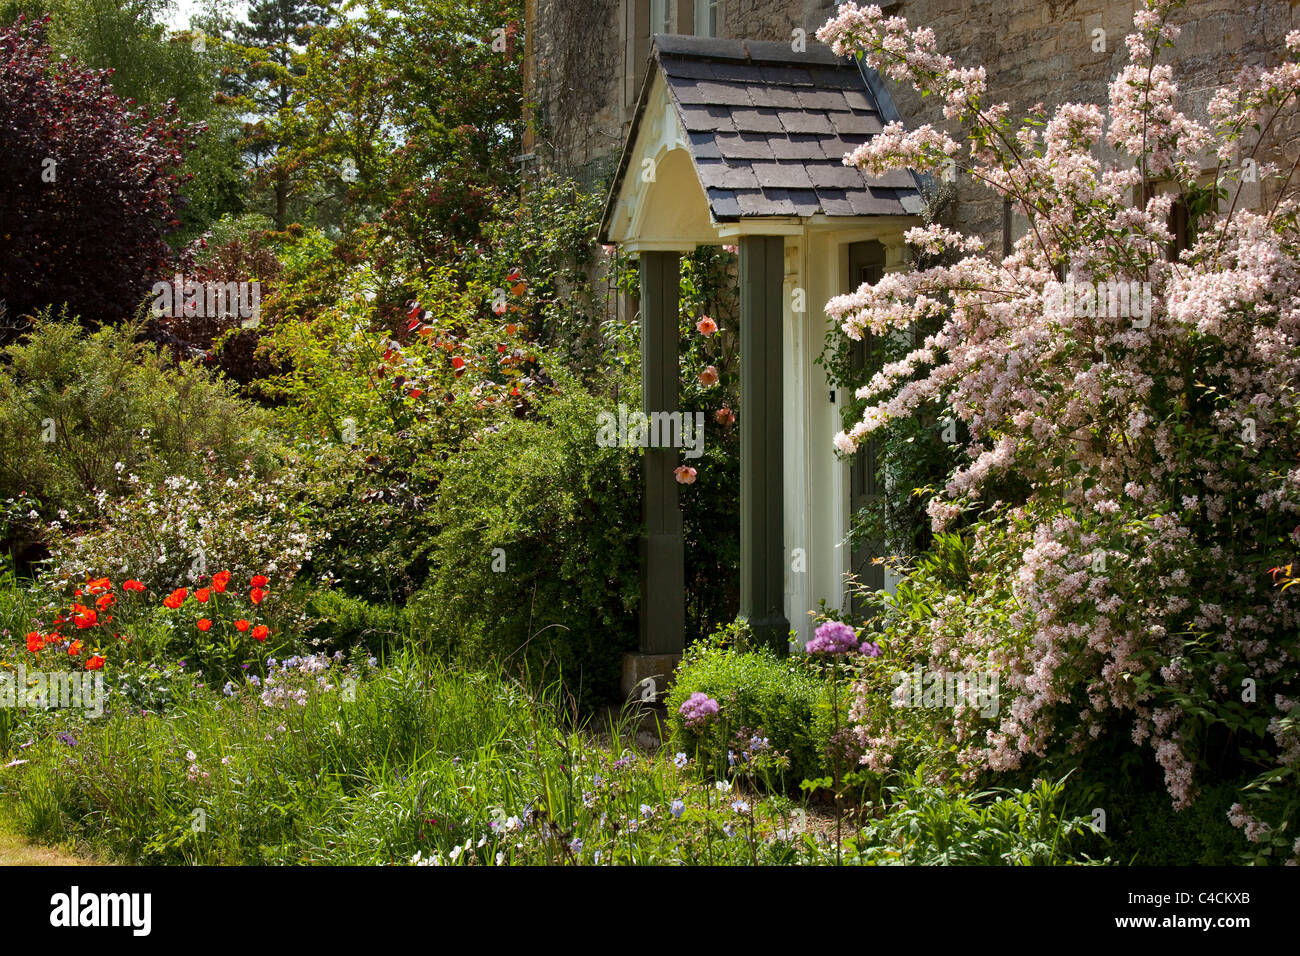 Porch and doorway of old english farmhouse,england - Stock Image